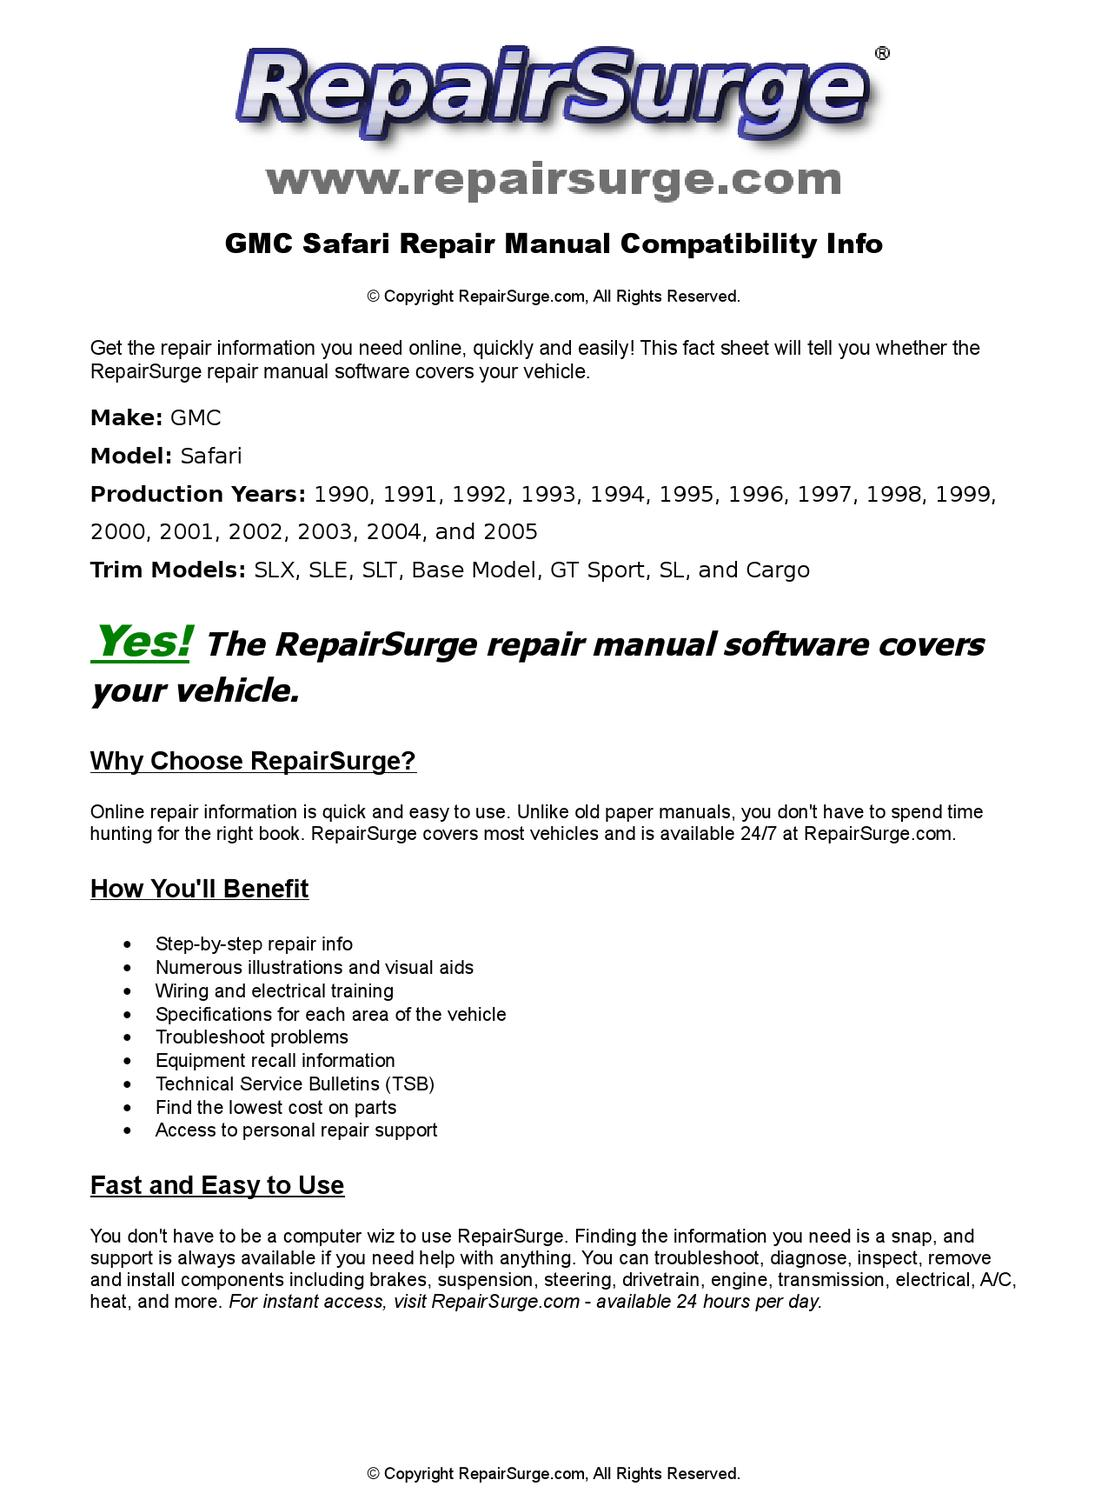 GMC Safari Online Repair Manual For 1990, 1991, 1992, 1993, 1994, 1995,  1996, 1997, 1998, 1999, 2000 by RepairSurge - issuu